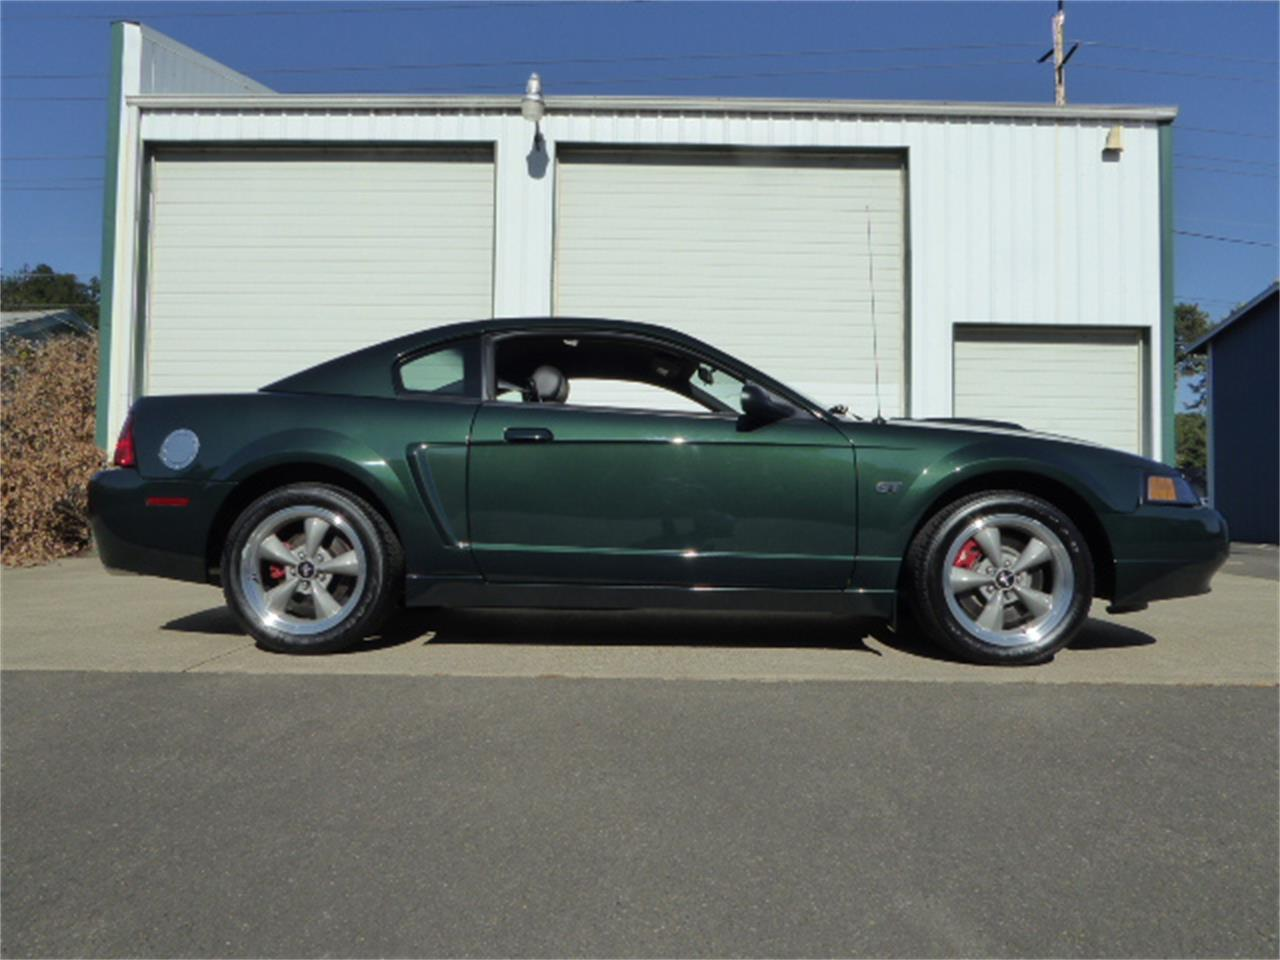 For sale 2001 ford mustang in turner oregon